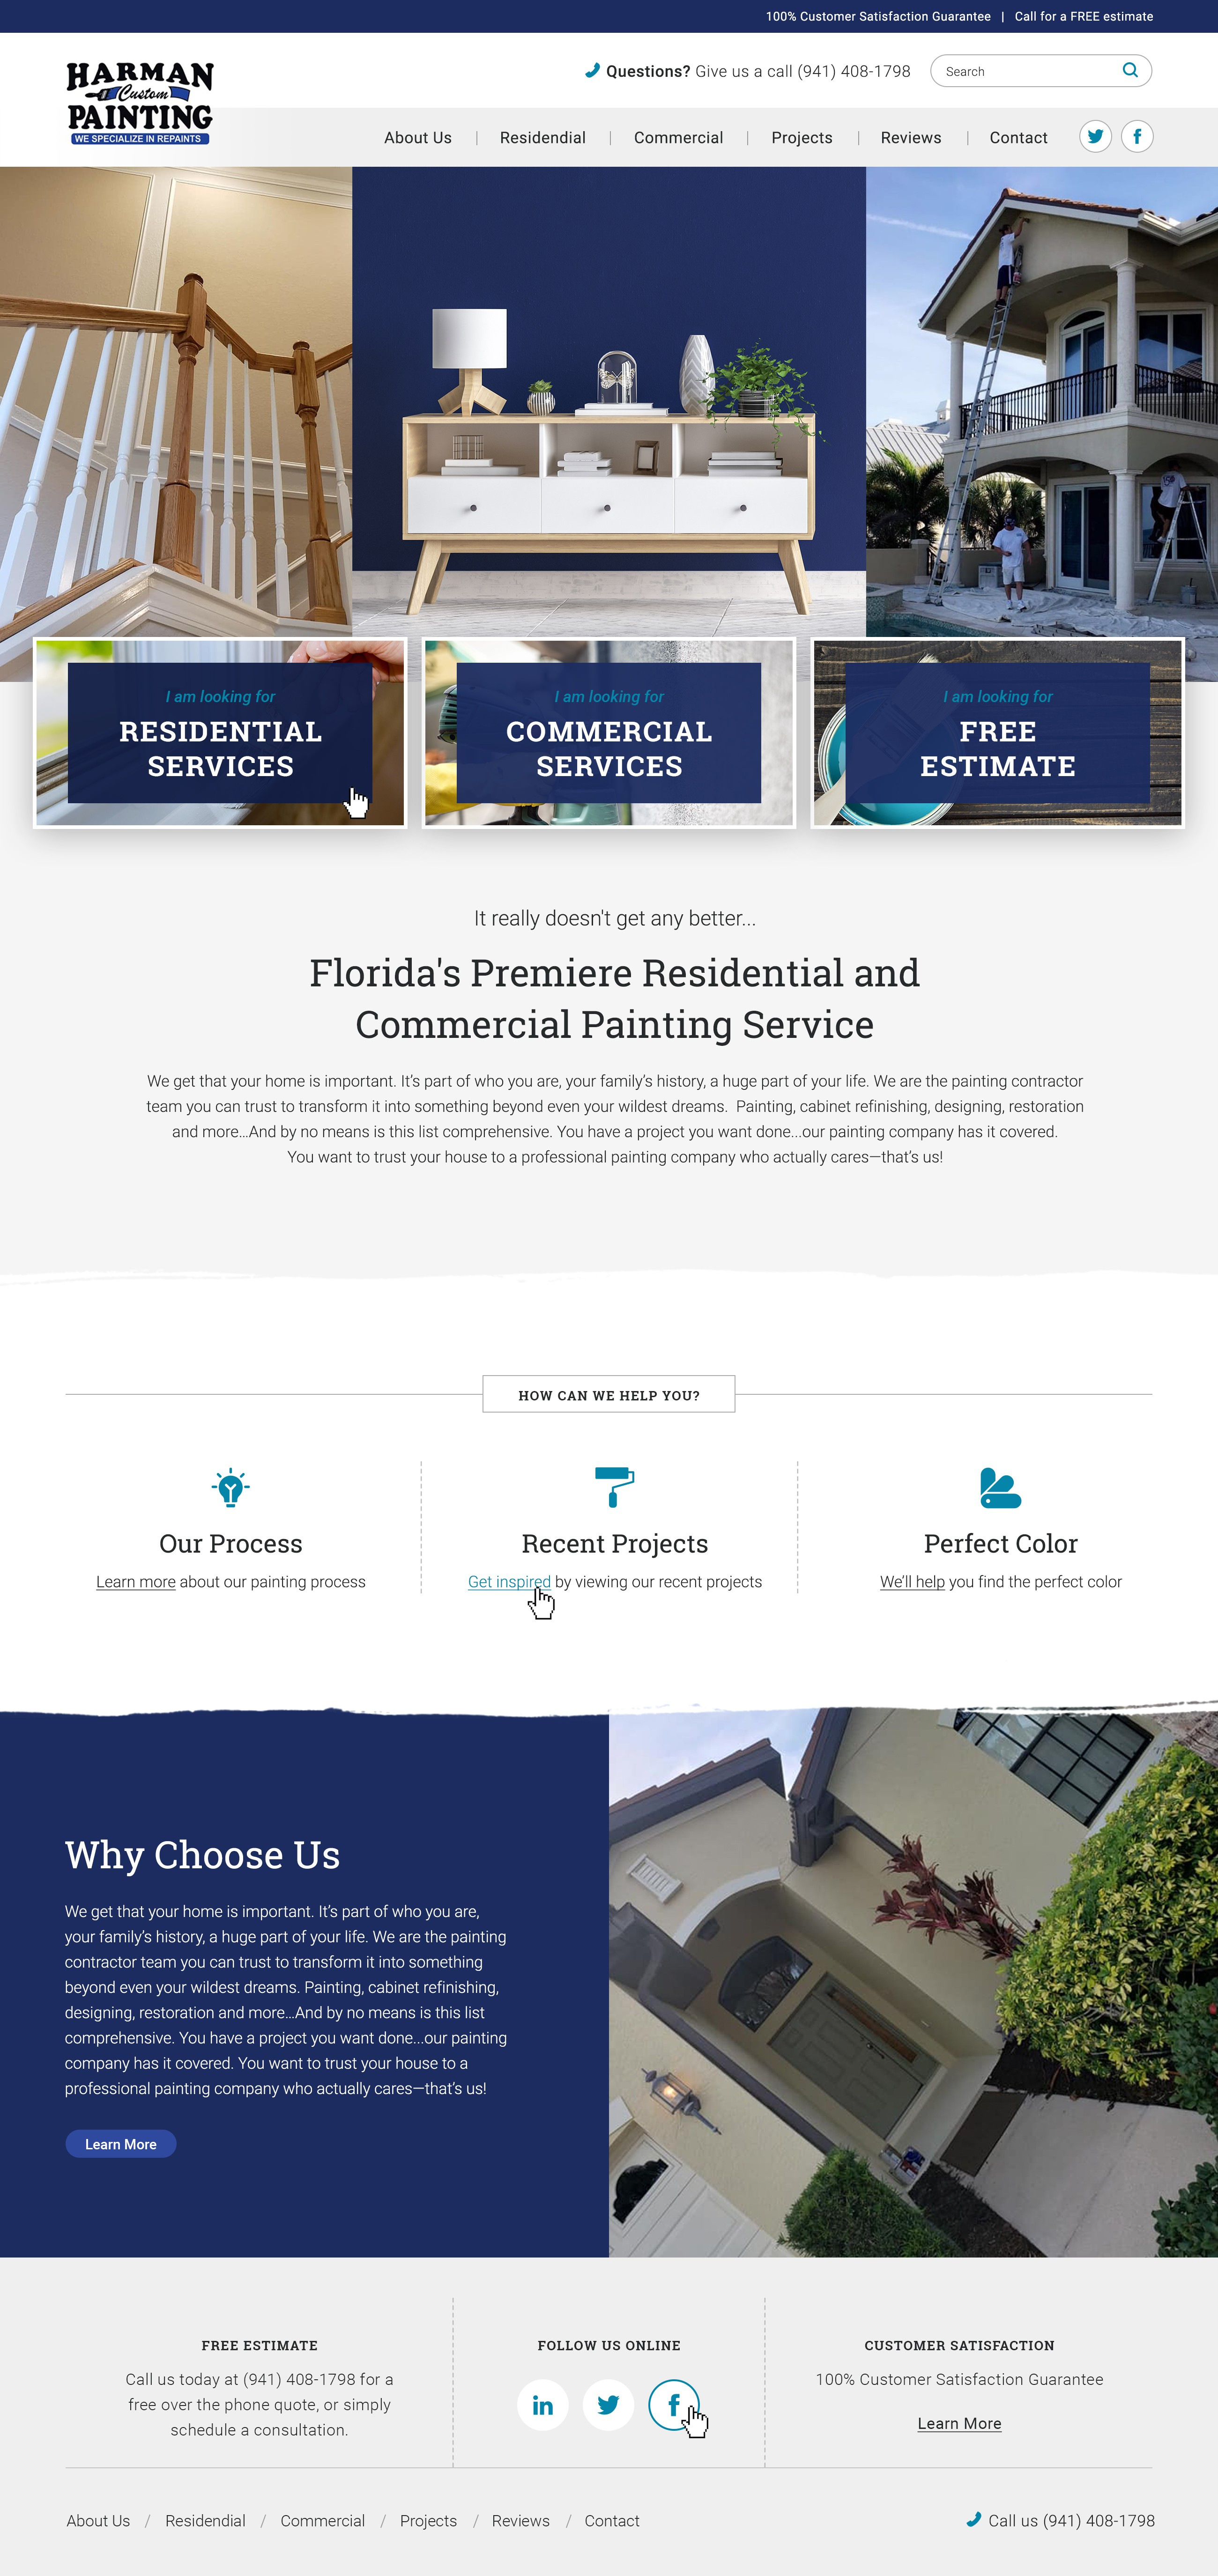 Established Painting Company First Website